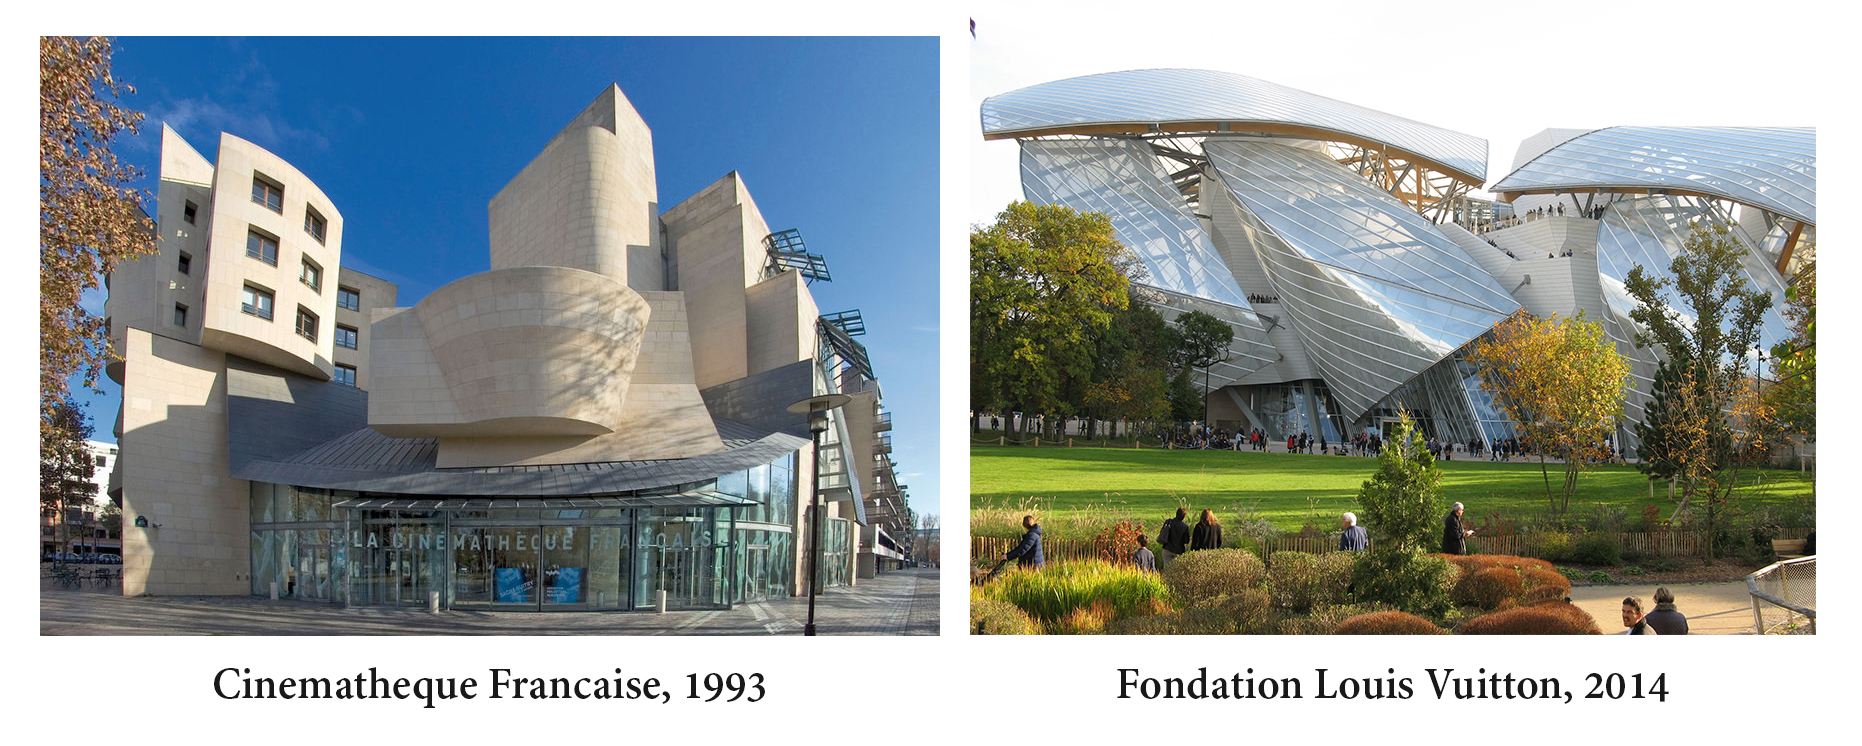 Frank Gehry - Cinematheque Francaise, Fondation Louis Vuitton